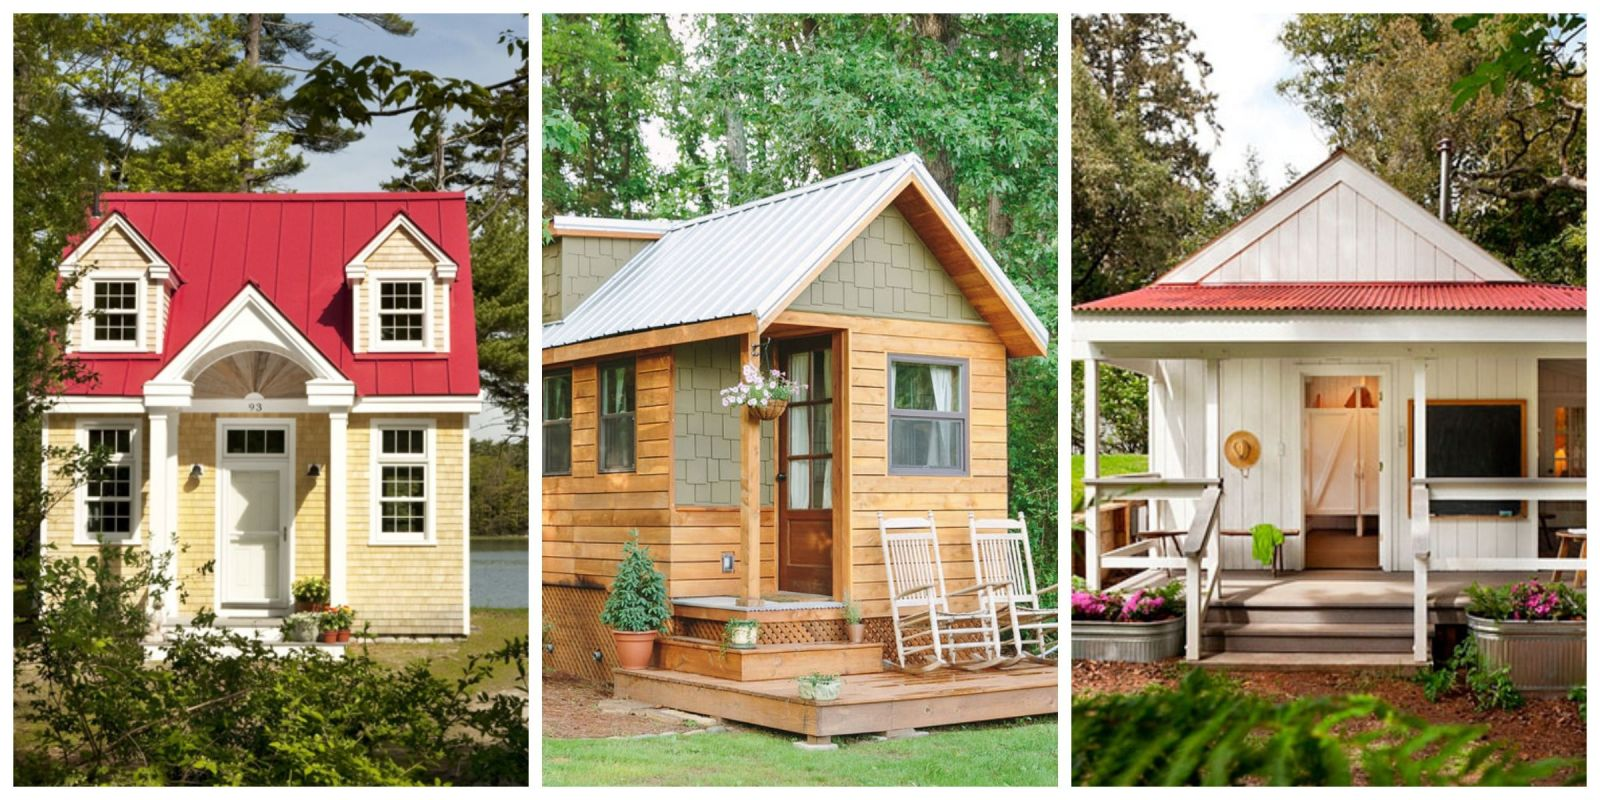 Stunning small house design 65 best tiny houses 2017 - small house pictures u0026 plans oxvzigv